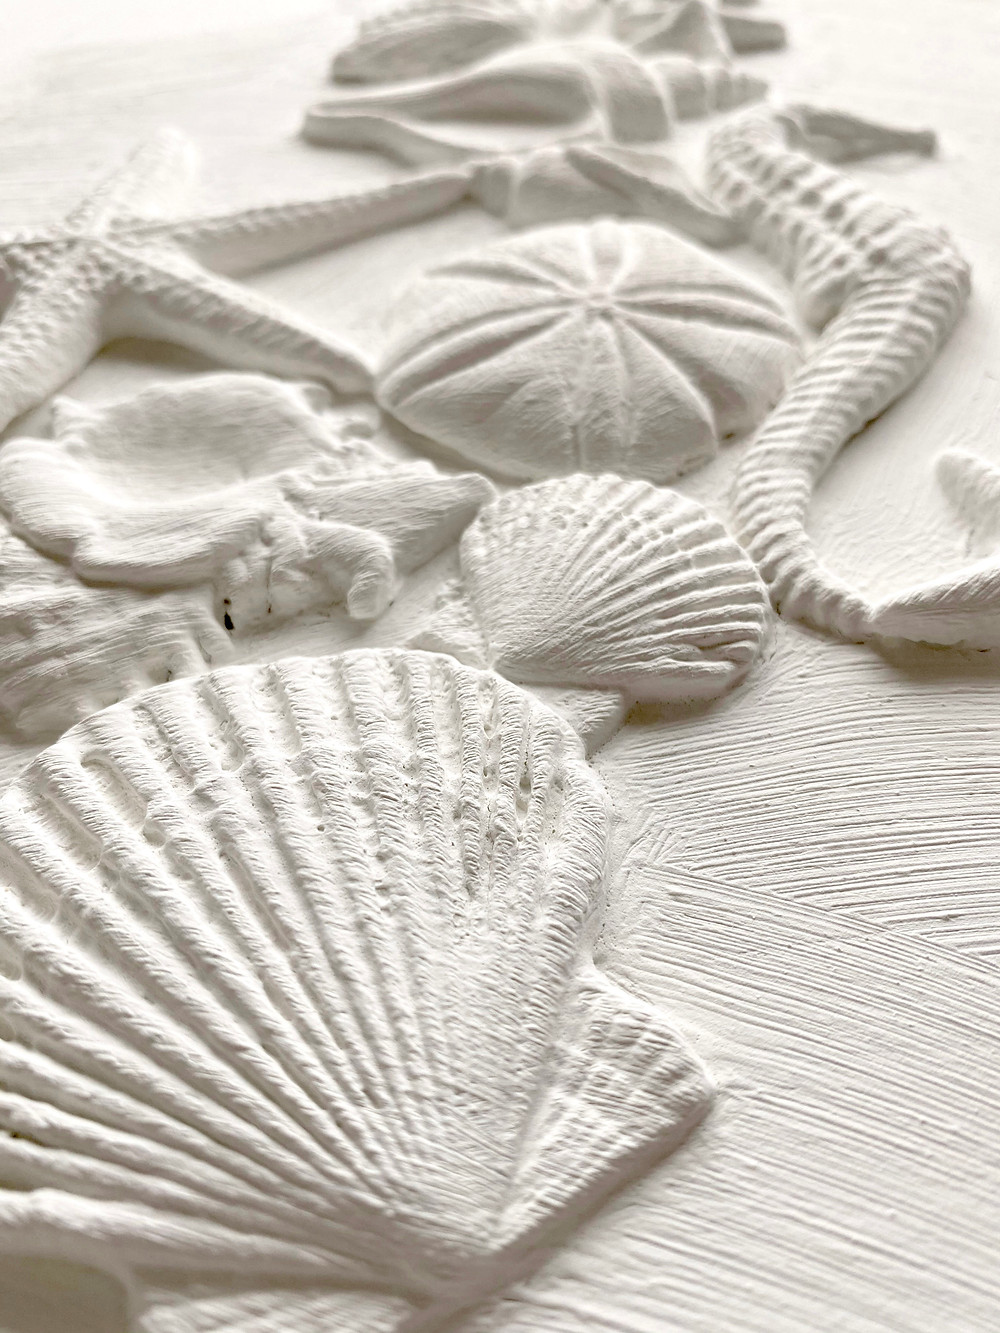 Incredible details show through in these sea inspired moulds.